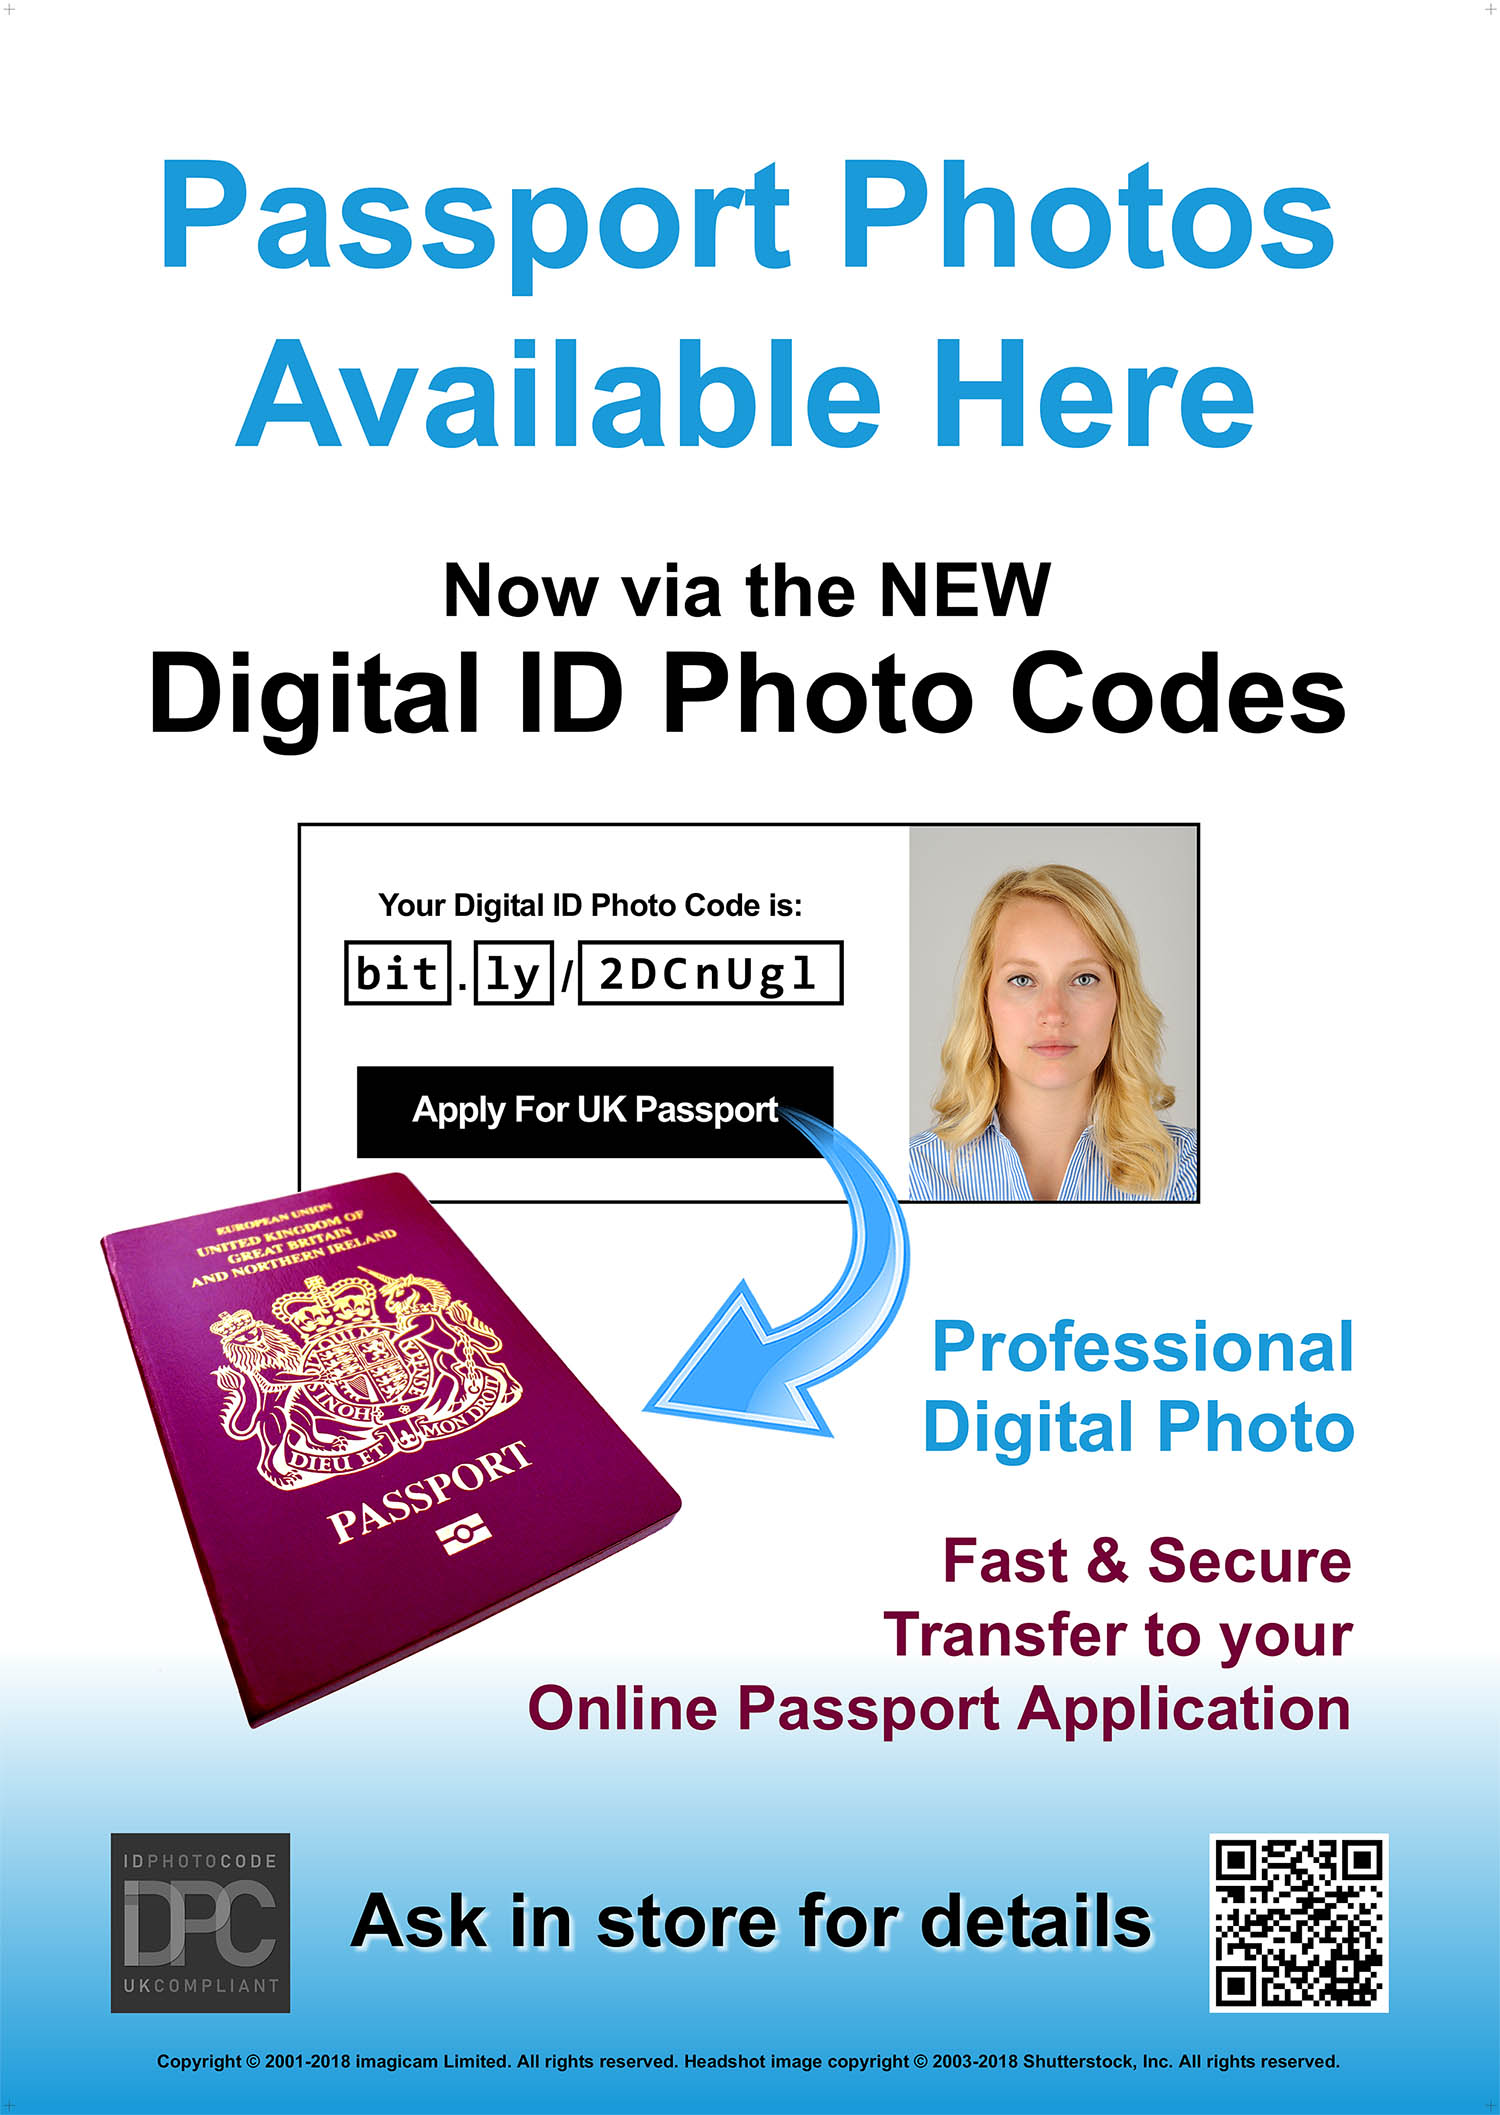 Poster promoting passport and ID photography